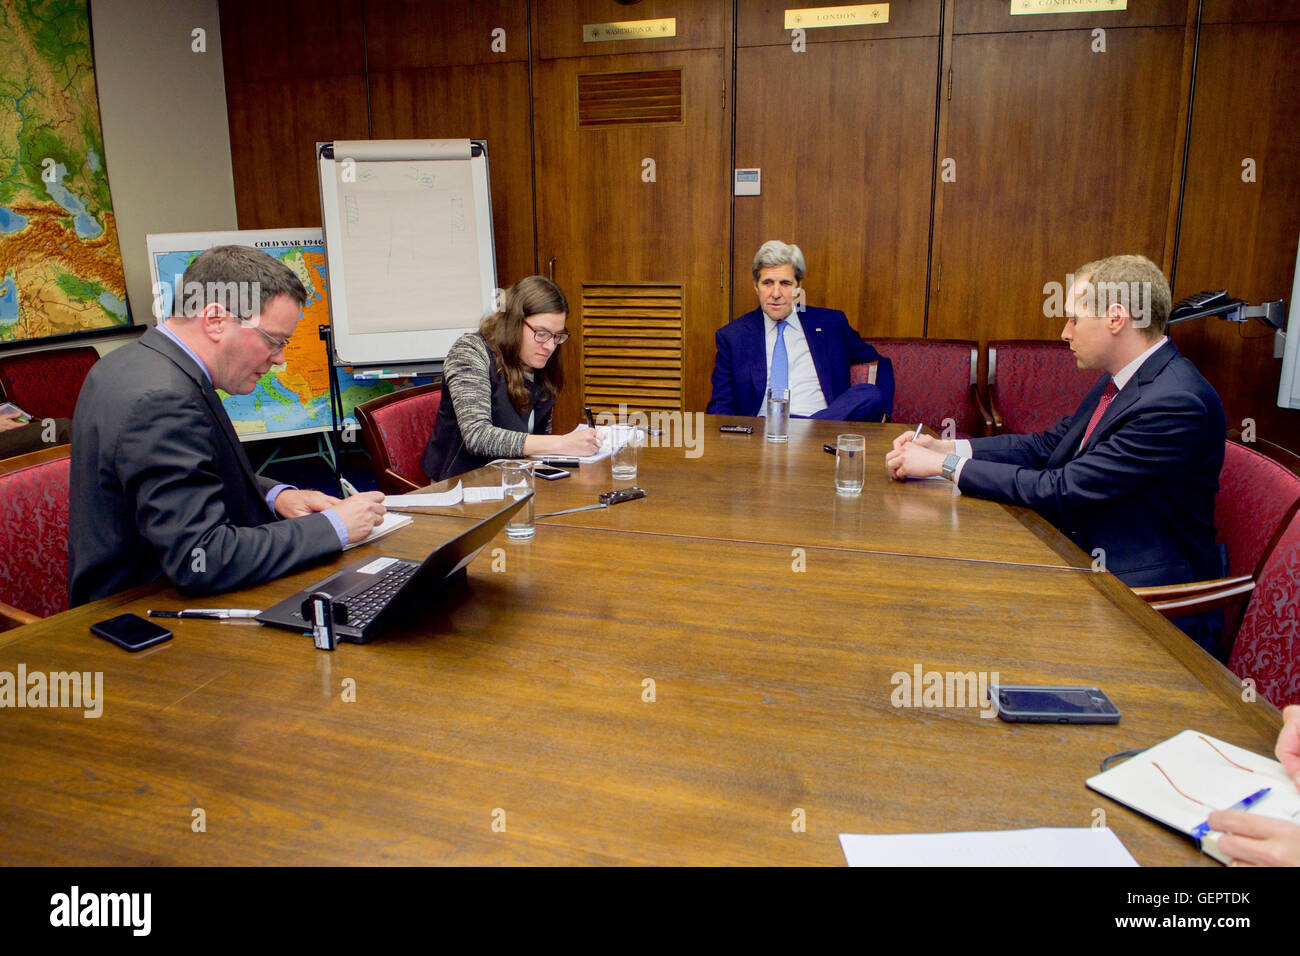 Secretary Kerry Conducts a Reporters' Roundtable Discussion With Journalists From Reuters, The Wall Street Journal, - Stock Image